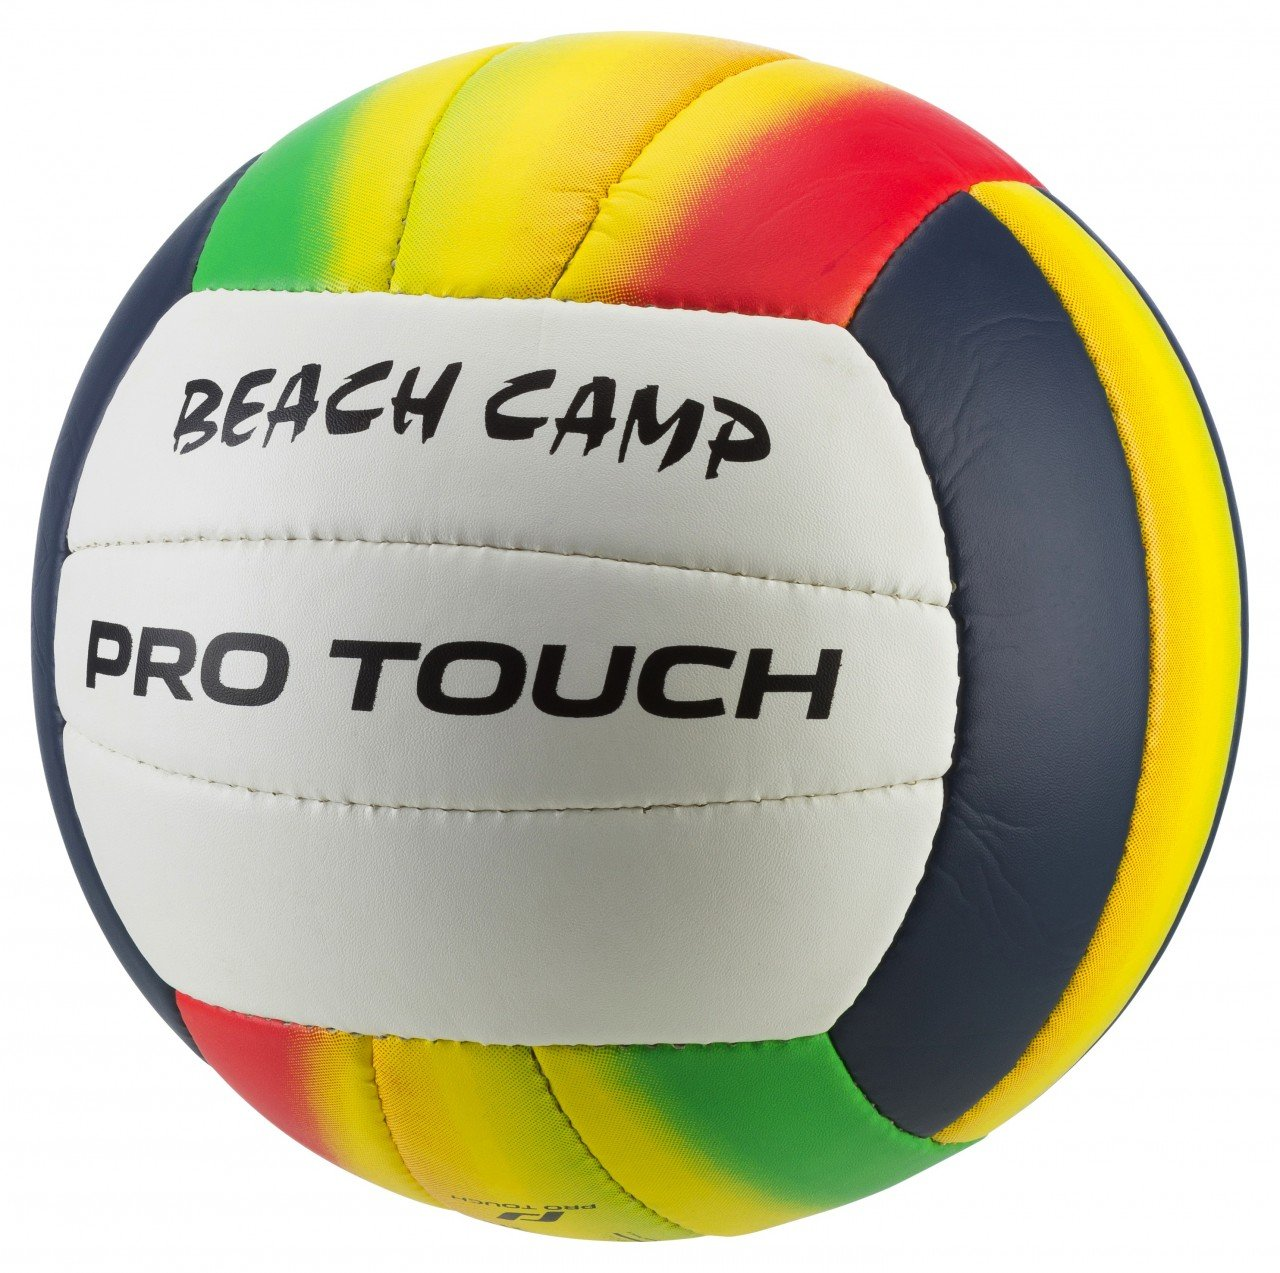 Pro Touch Unisex Beach Camp Volleyball Multicolor One Size ADIL0|#adidas 78331